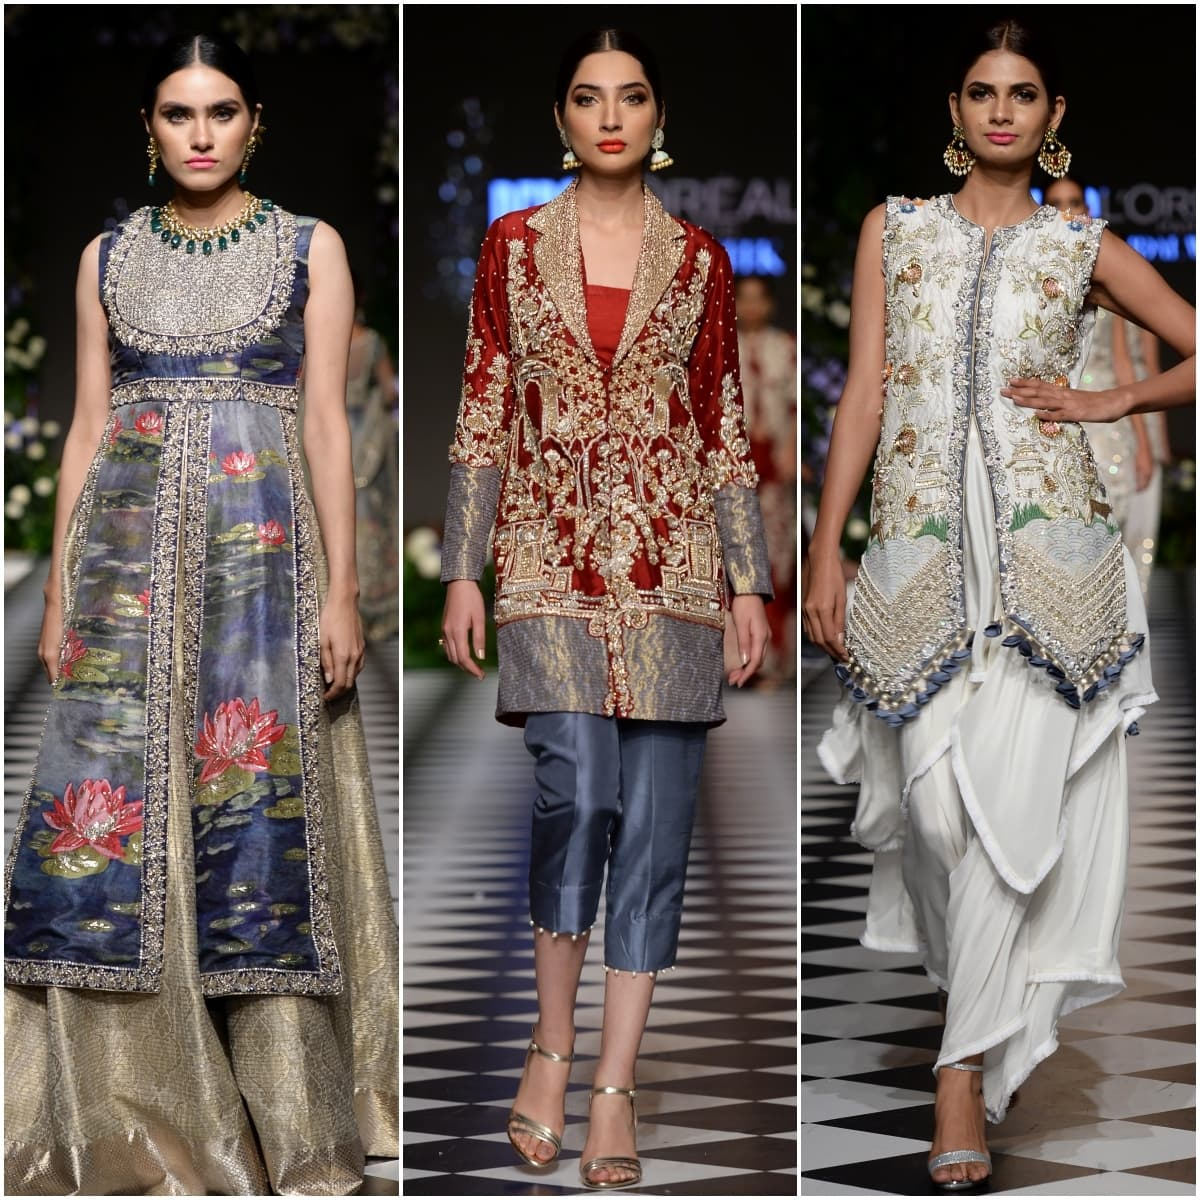 Saira Shakira's contemporary silhouettes worked the best